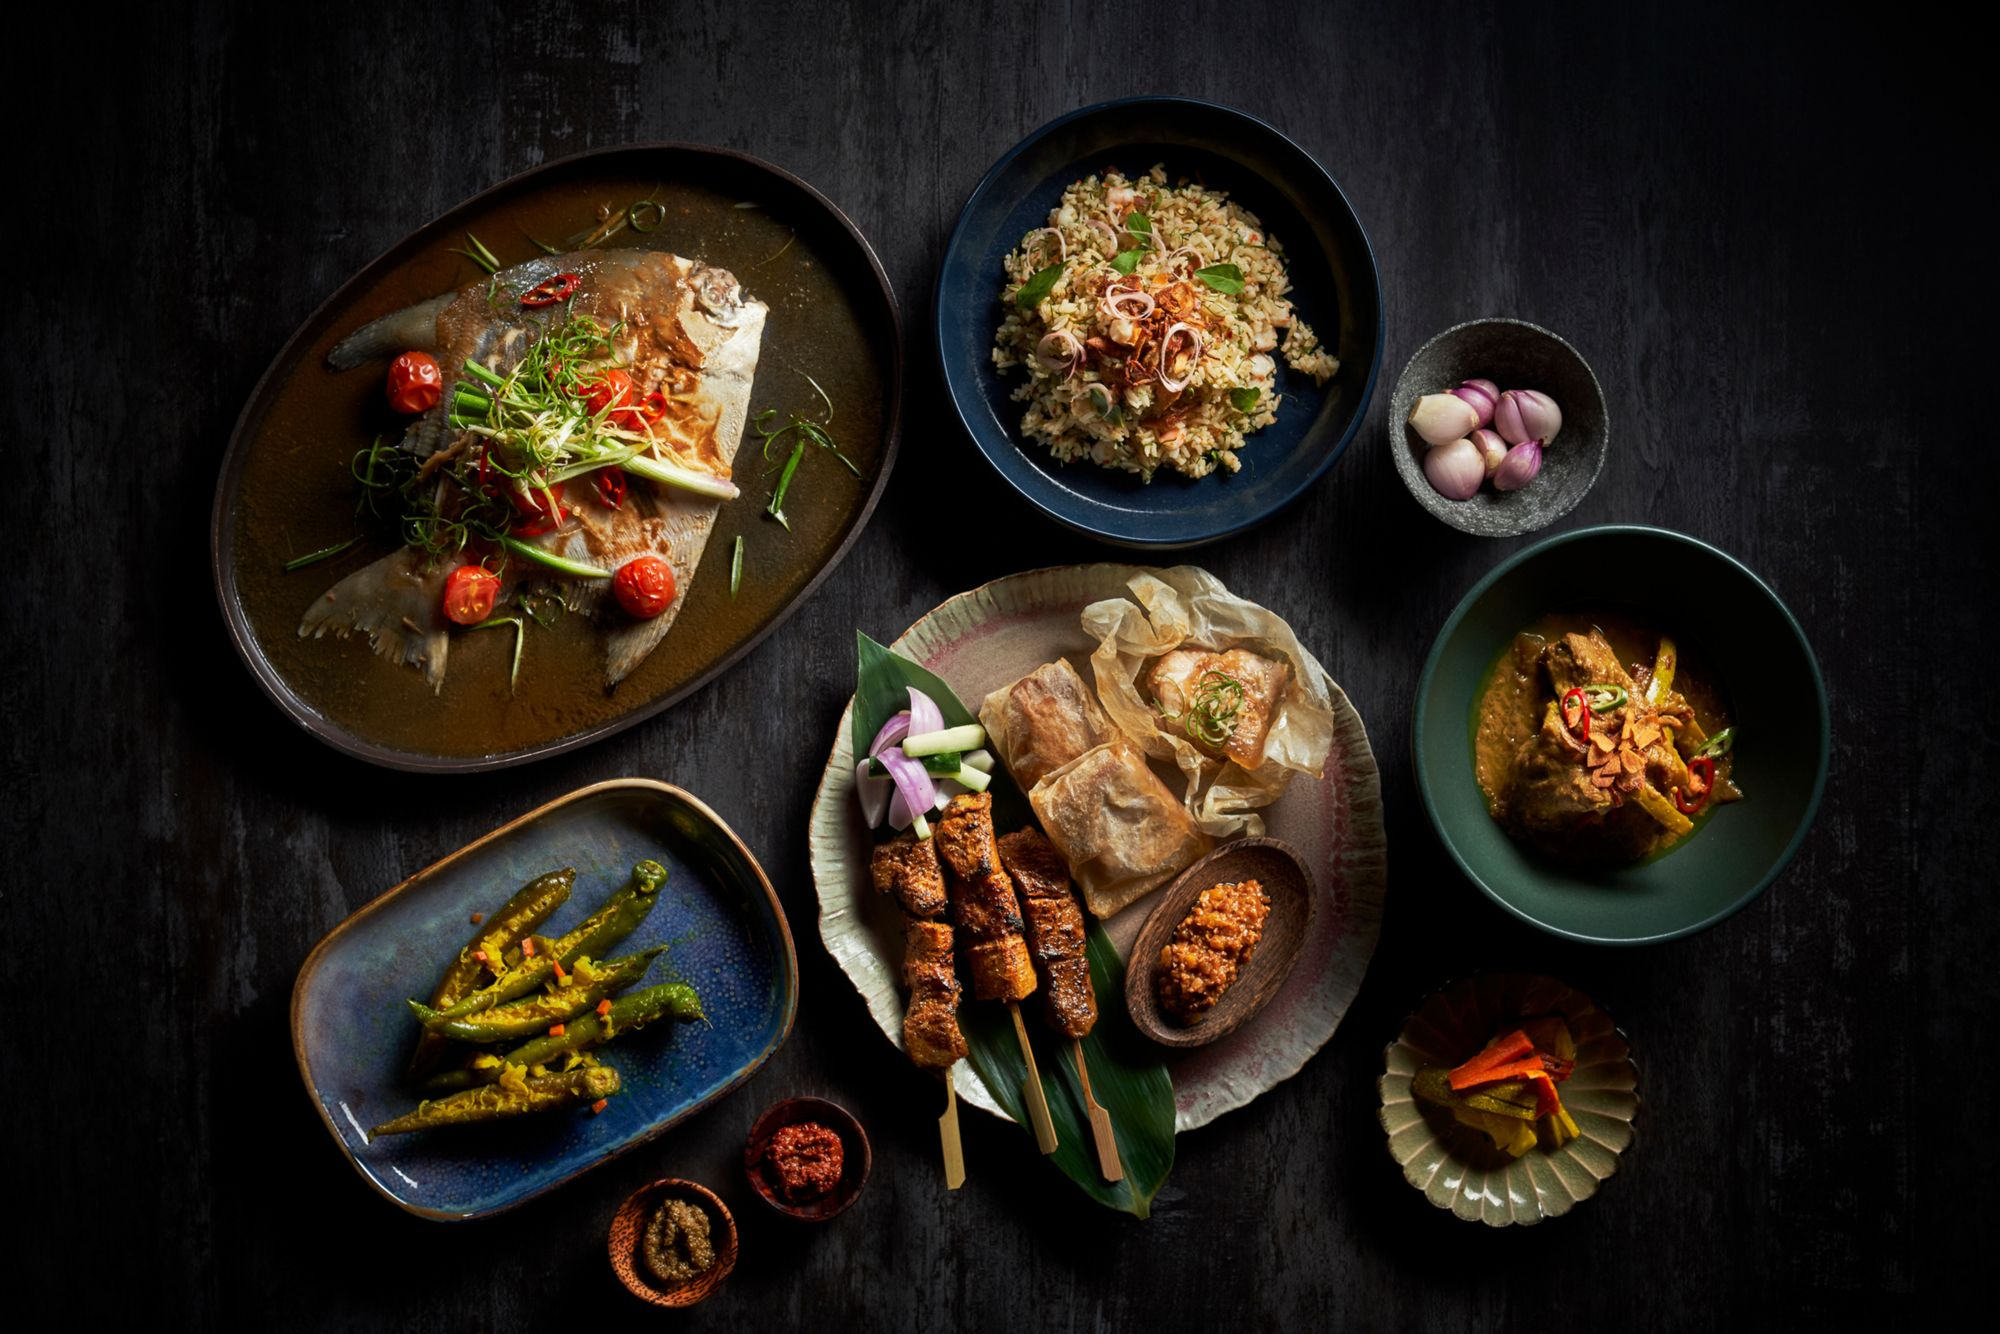 Singaporean Chef Damian D'Silva Ups His Game With New Restaurant Kin At Straits Clan